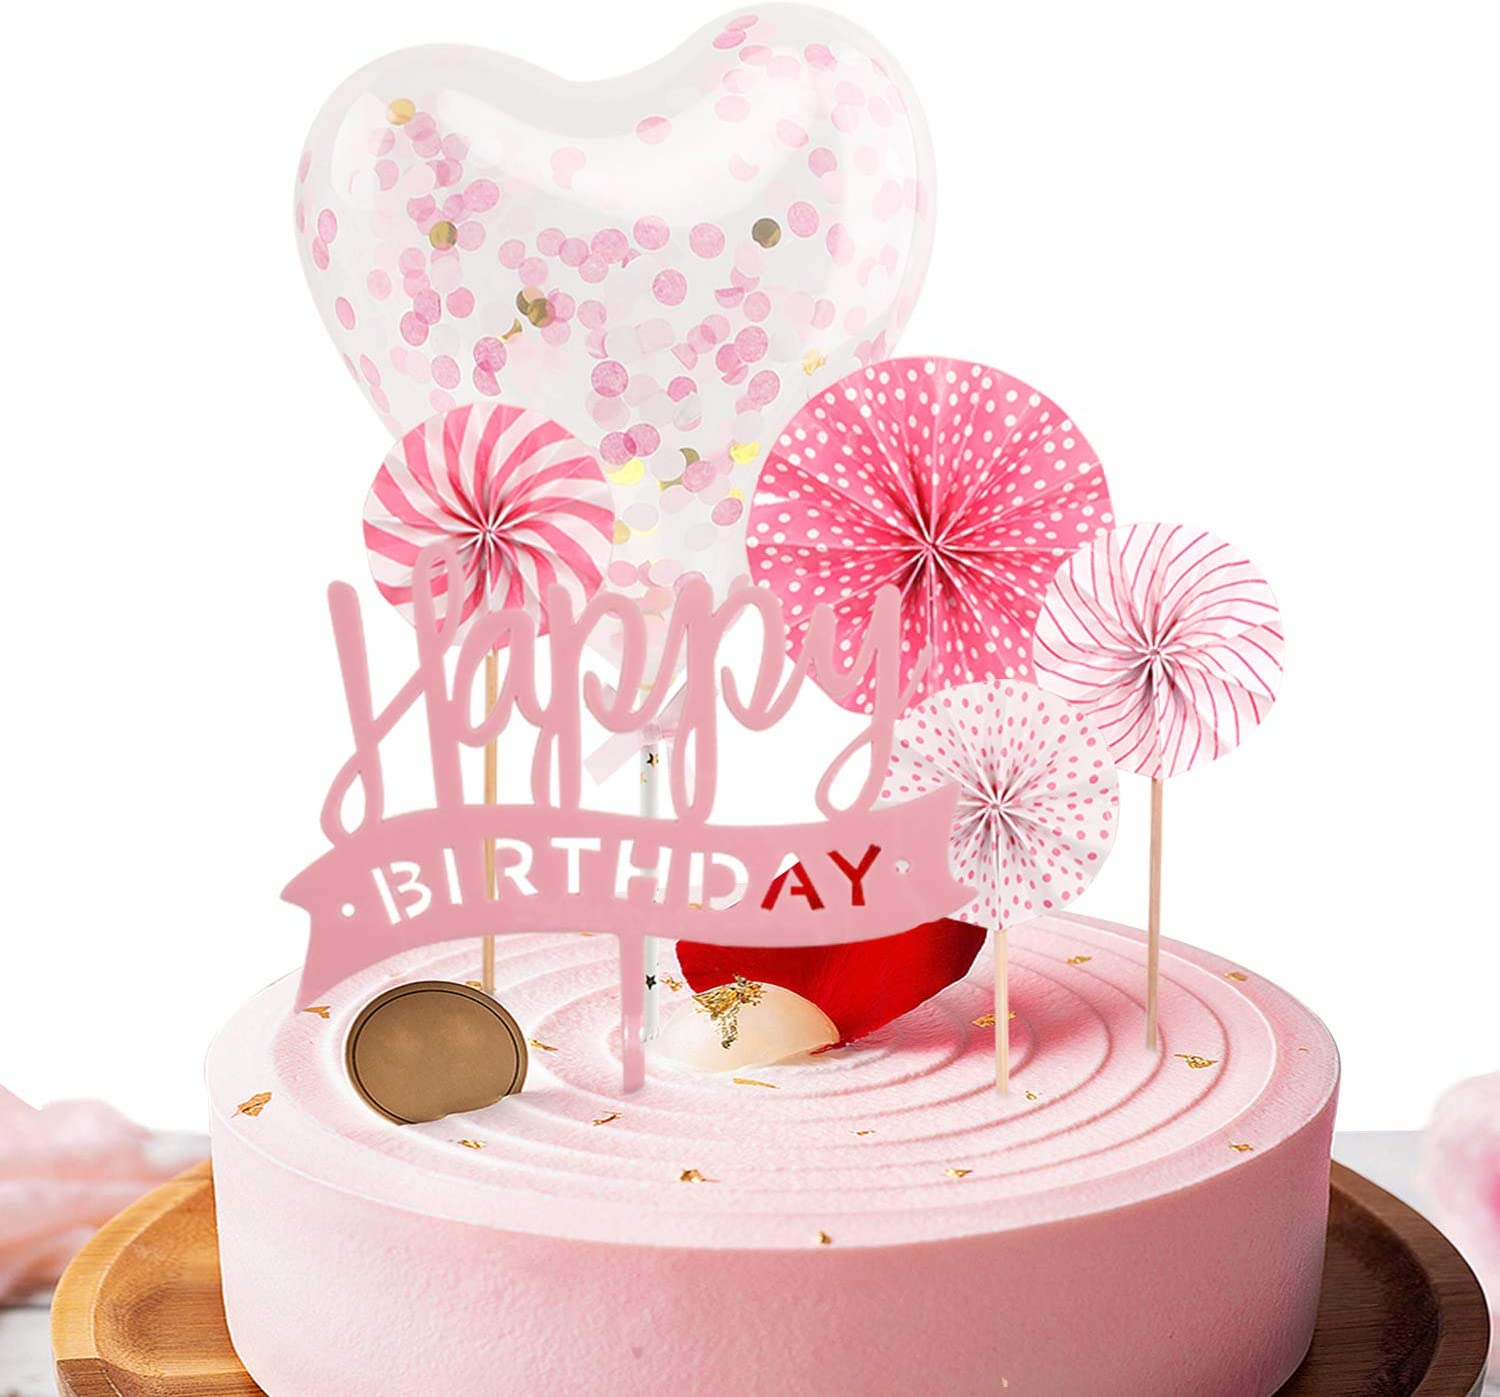 Happy Birthday Pink Cake Topper, Lowki Pink Cupcake Topper with Pink Paper Fans, Confetti Balloon, Birthday Cake Supplies Decorations(6 pieces)